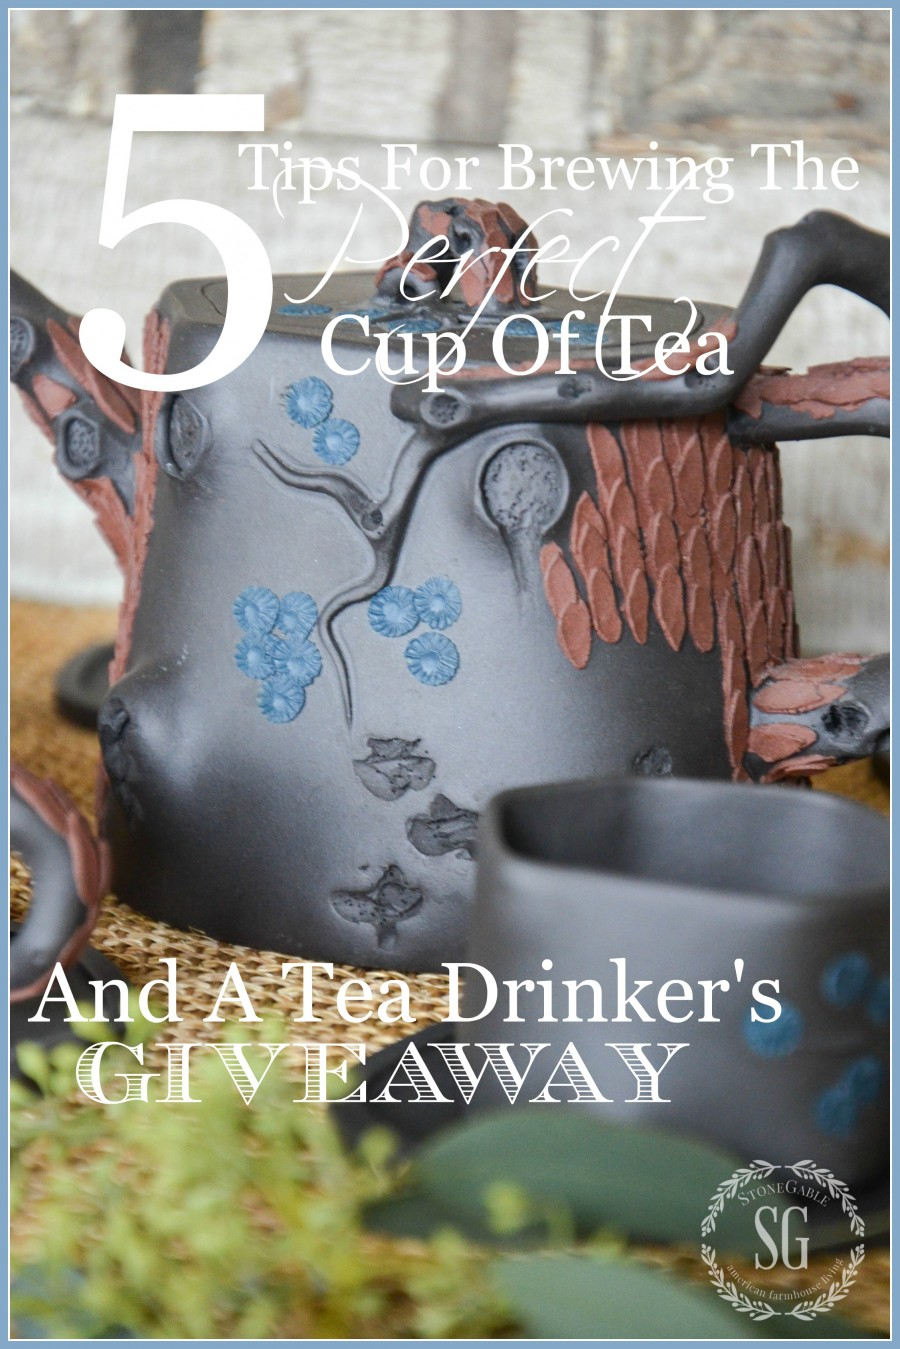 5 TIPS FOR BREWING THE PERFECT CUP OF TEA AND A GIVEAWAY